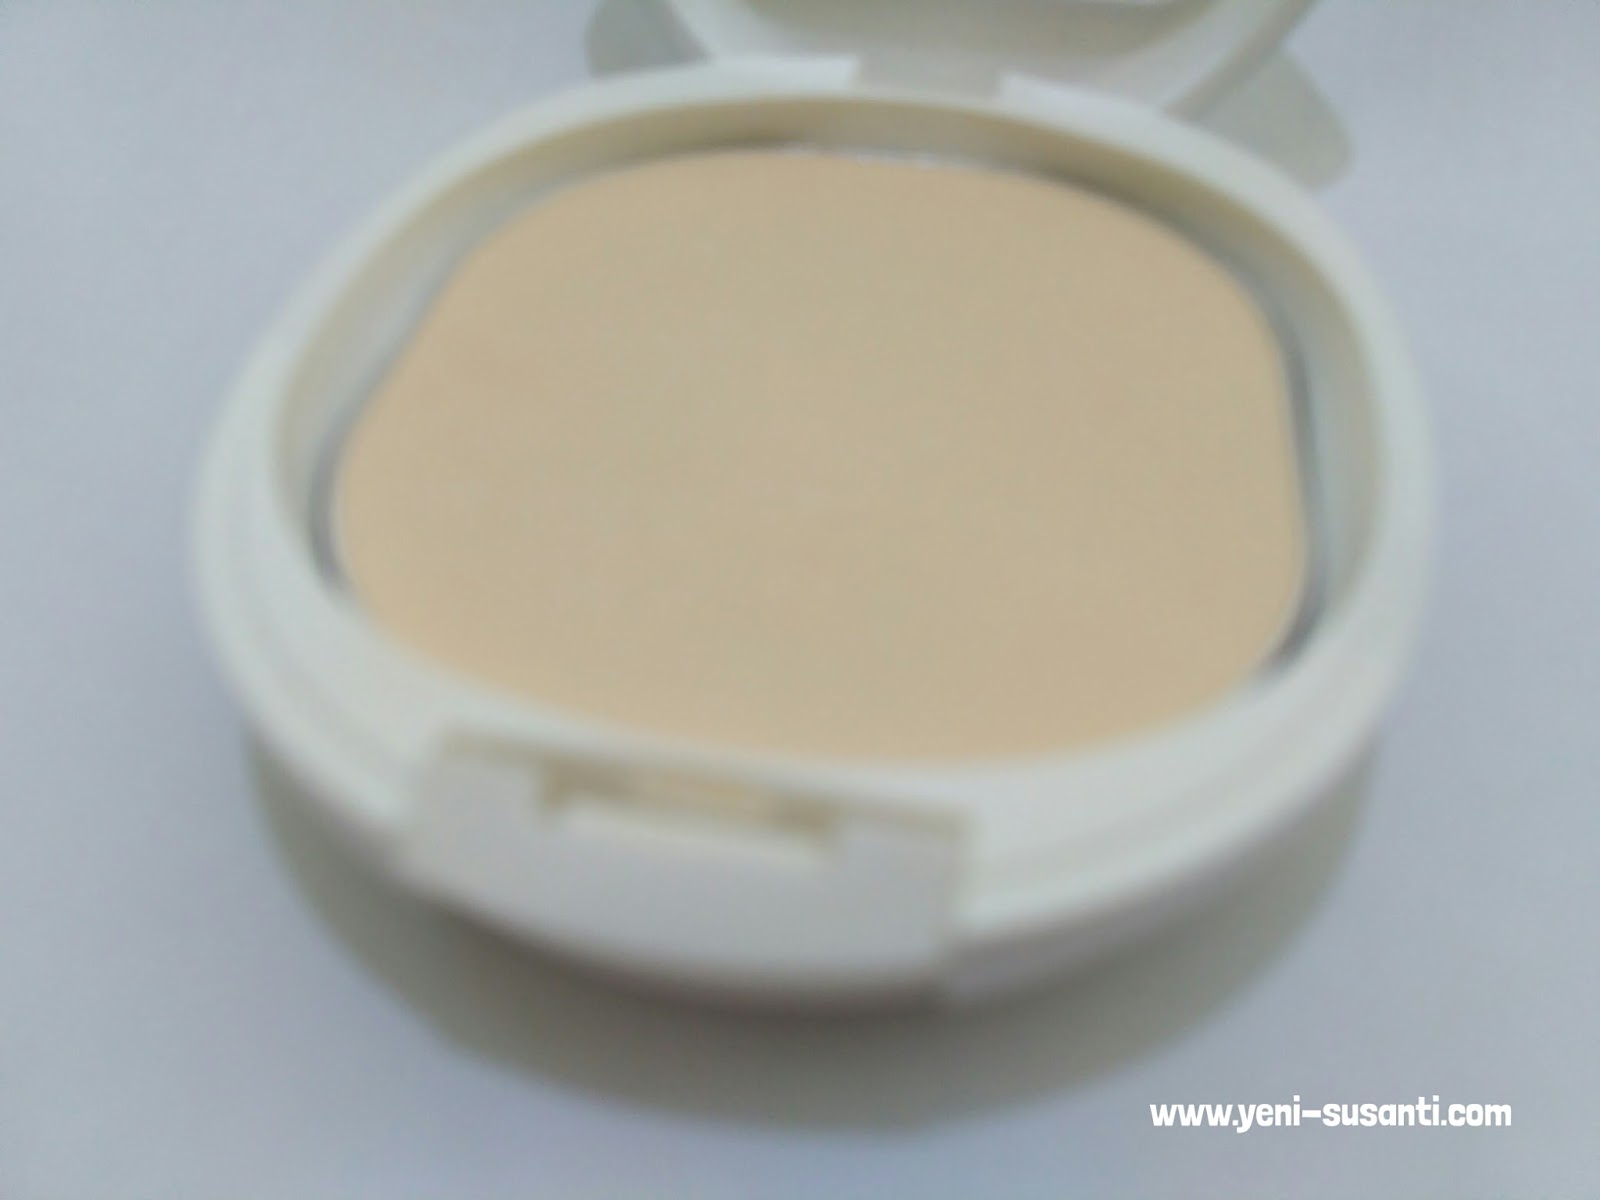 Review Pigeon Teens Compact Powder The Yellow Series Lifestyle Refill Hypoallergenic 20 Gr Gold